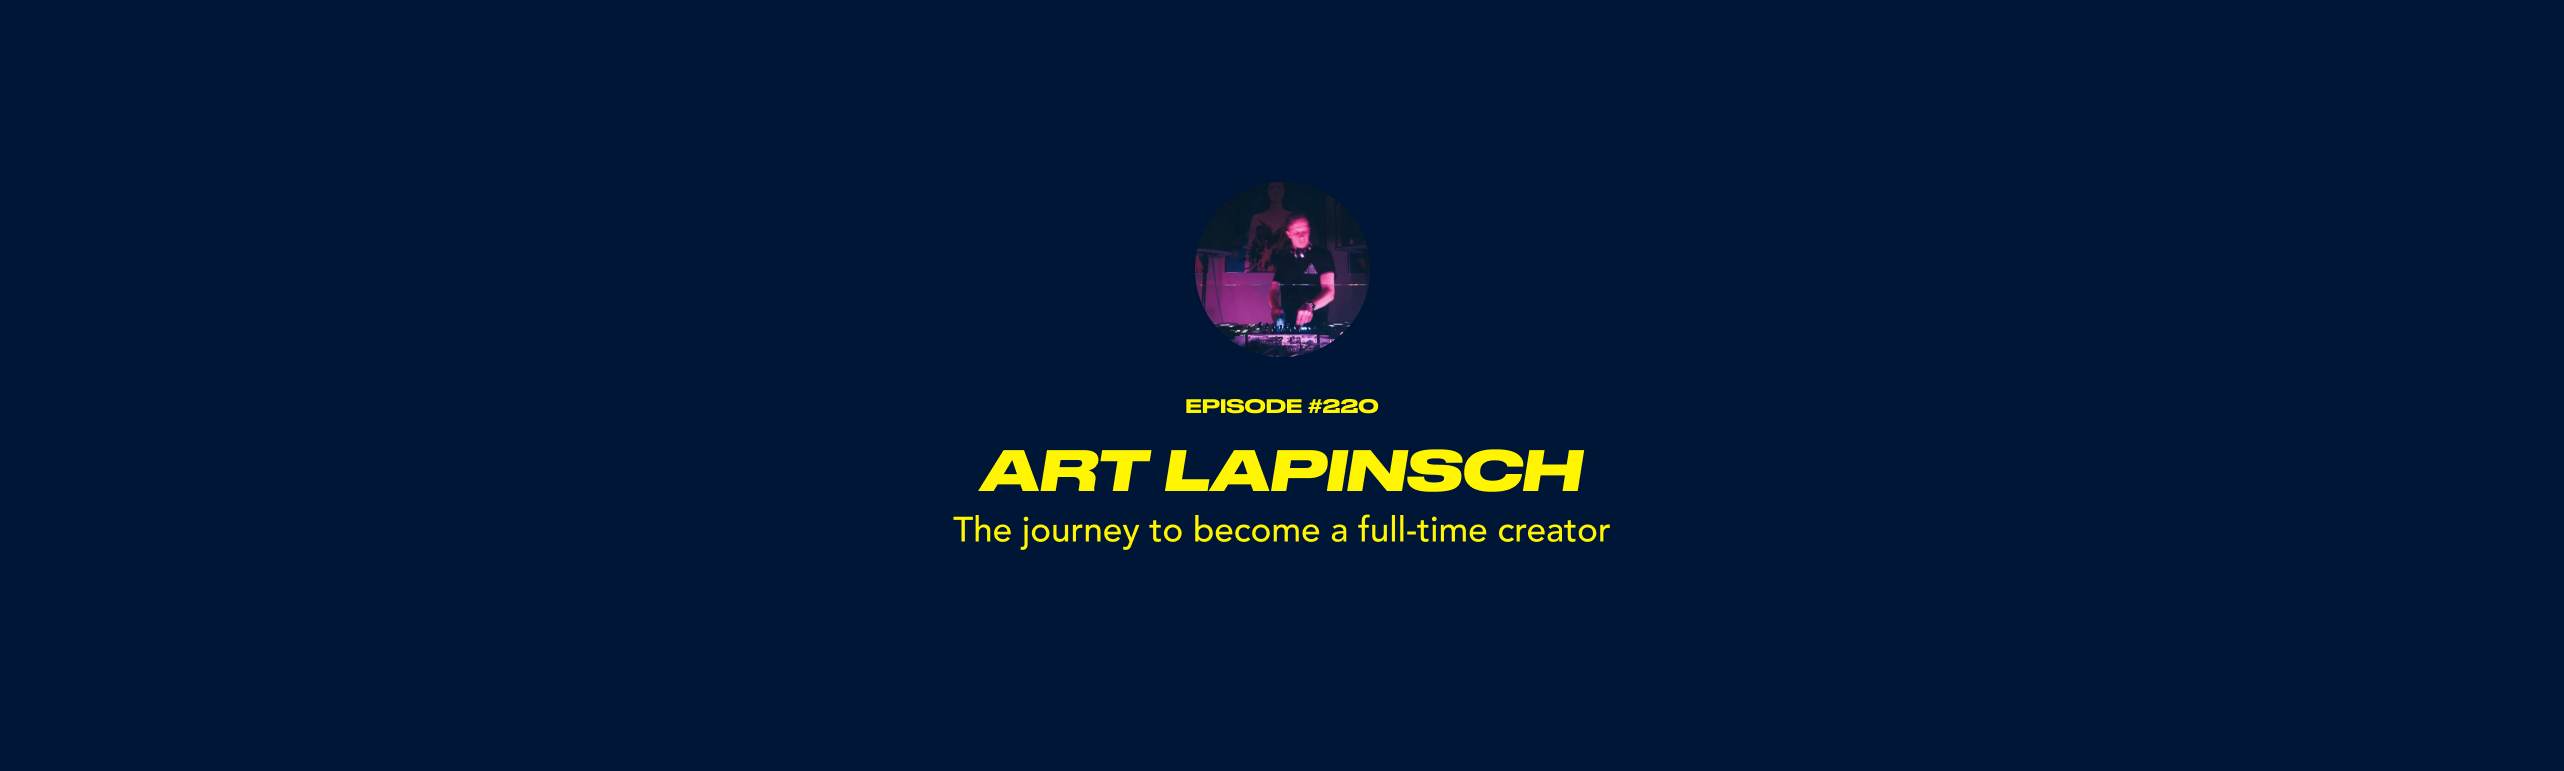 Art Lapinsch - The journey to become a full-time creator